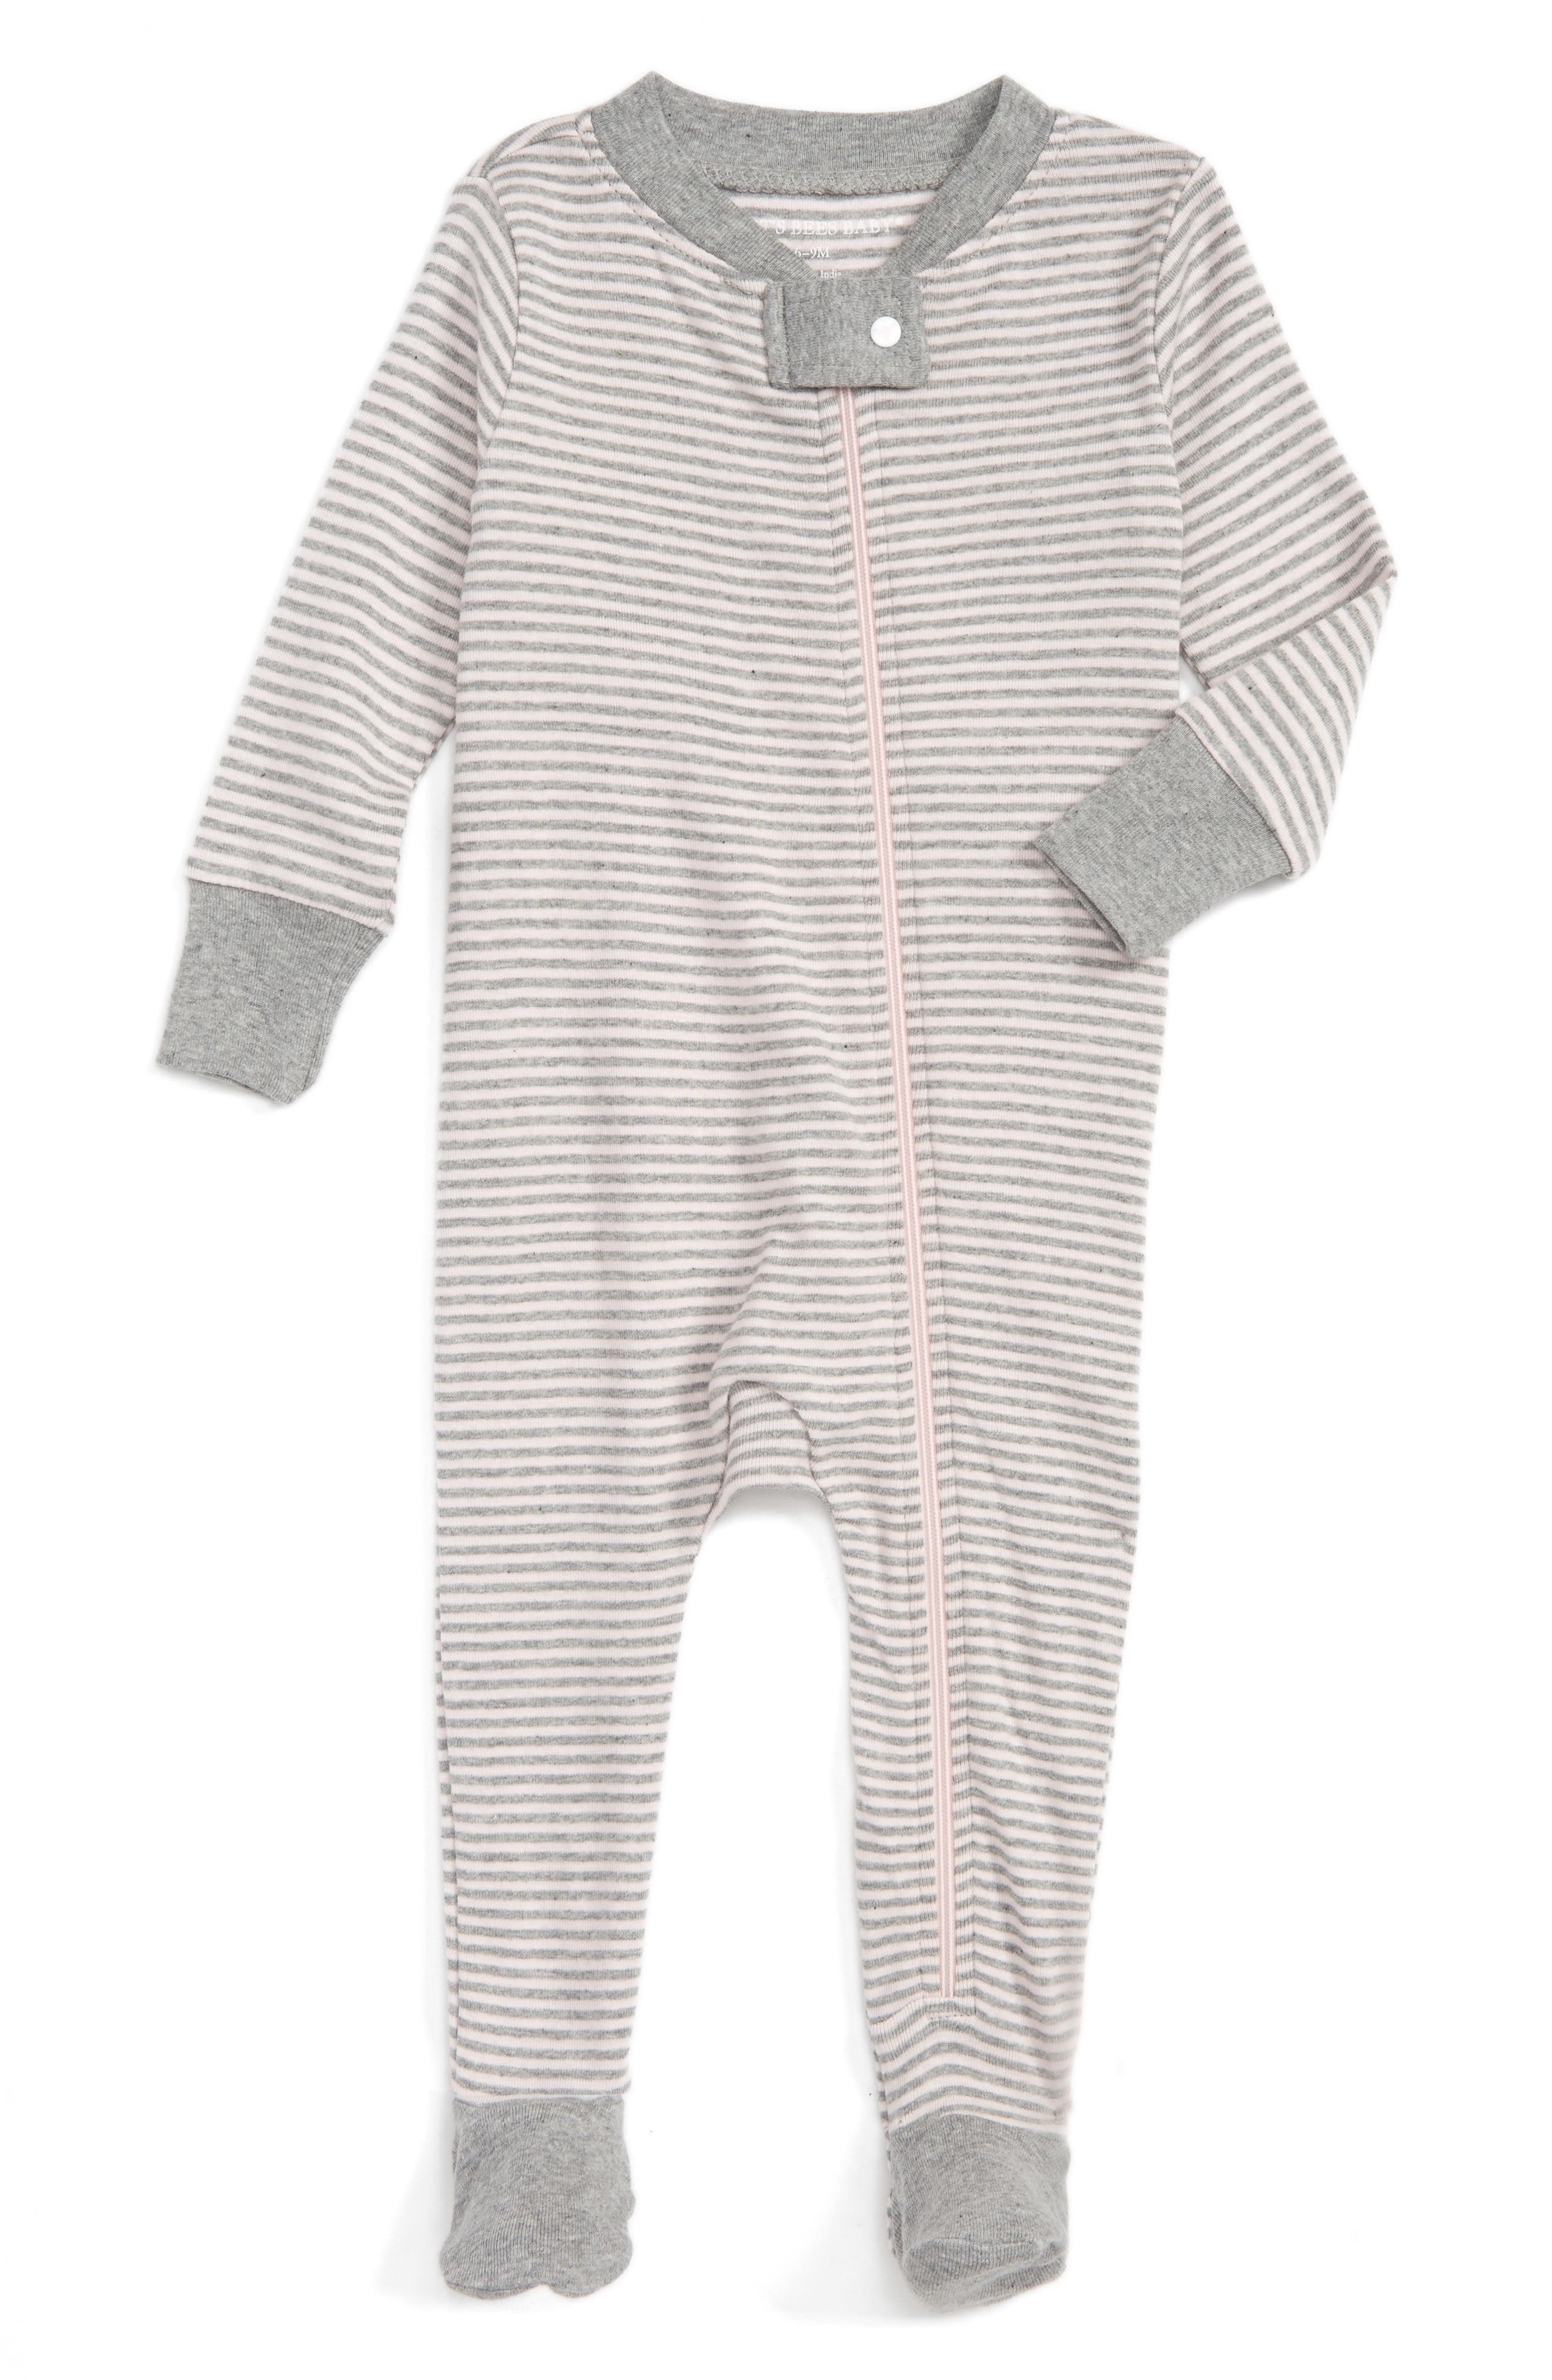 Burt's Bees Baby Stripe Fitted One-Piece Footed Pajamas (Baby Girls)